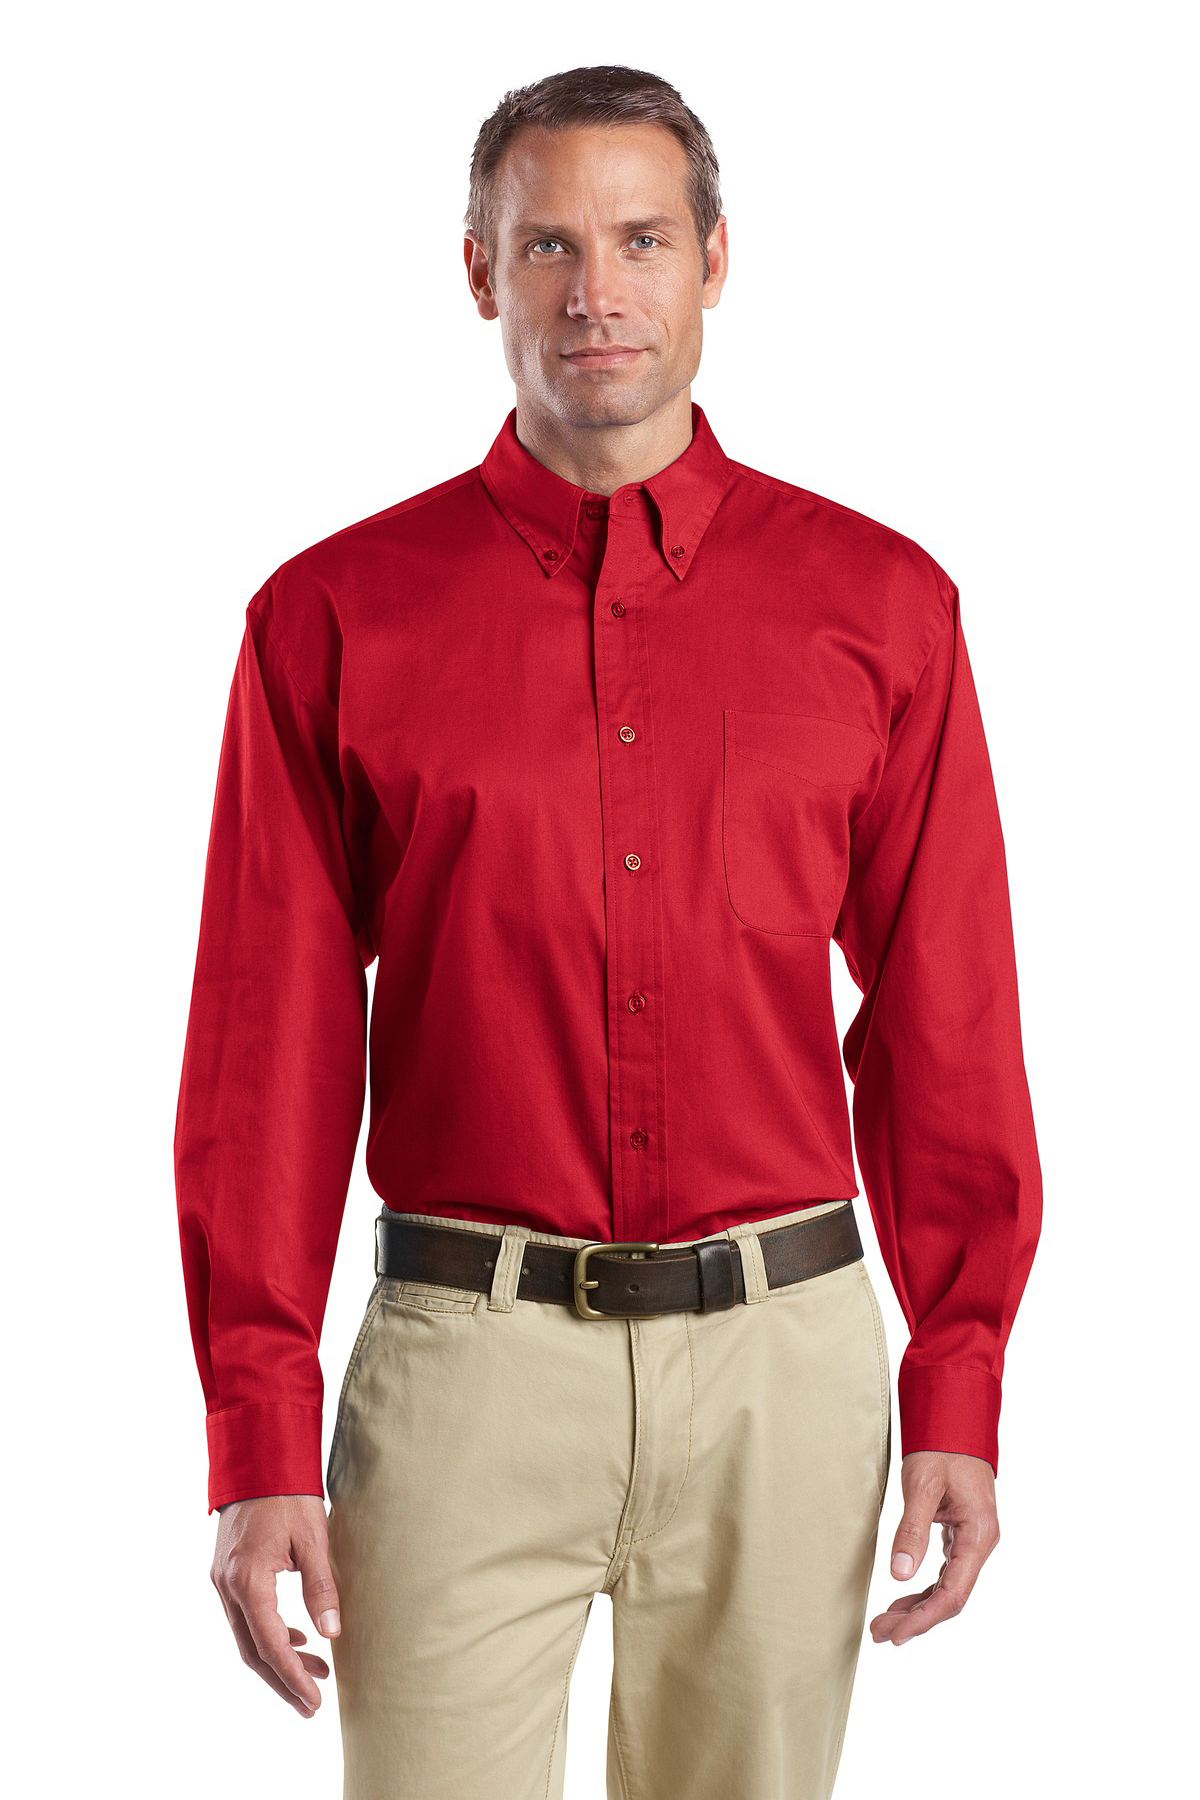 Woven-Shirts-Easy-Care-64